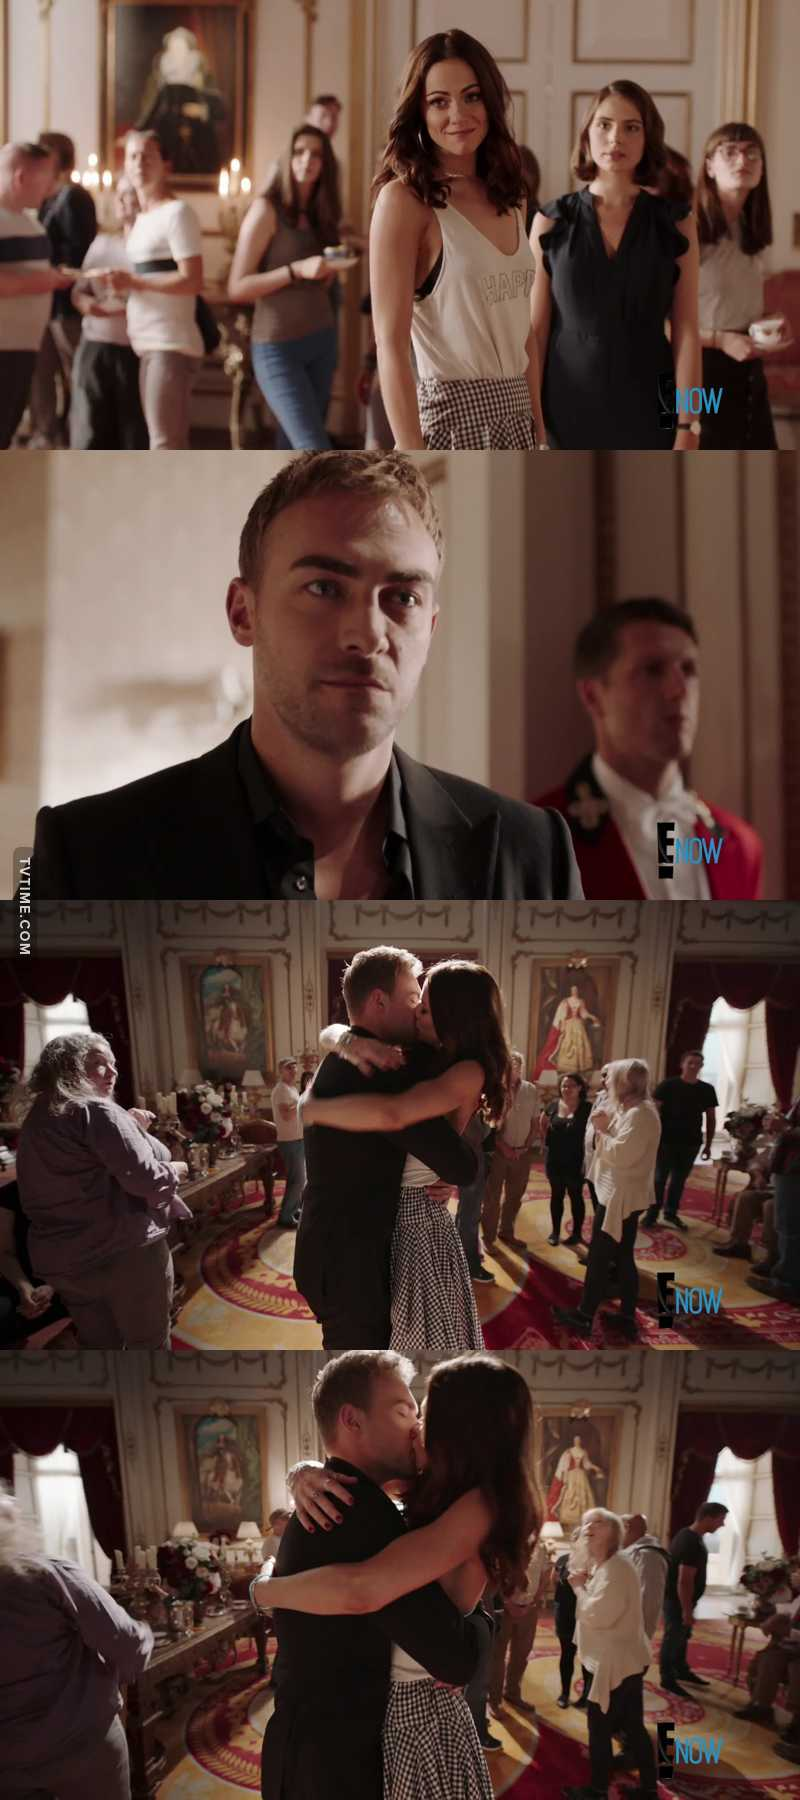 And then there was light ❤ Jaspenor is a miracle 😍